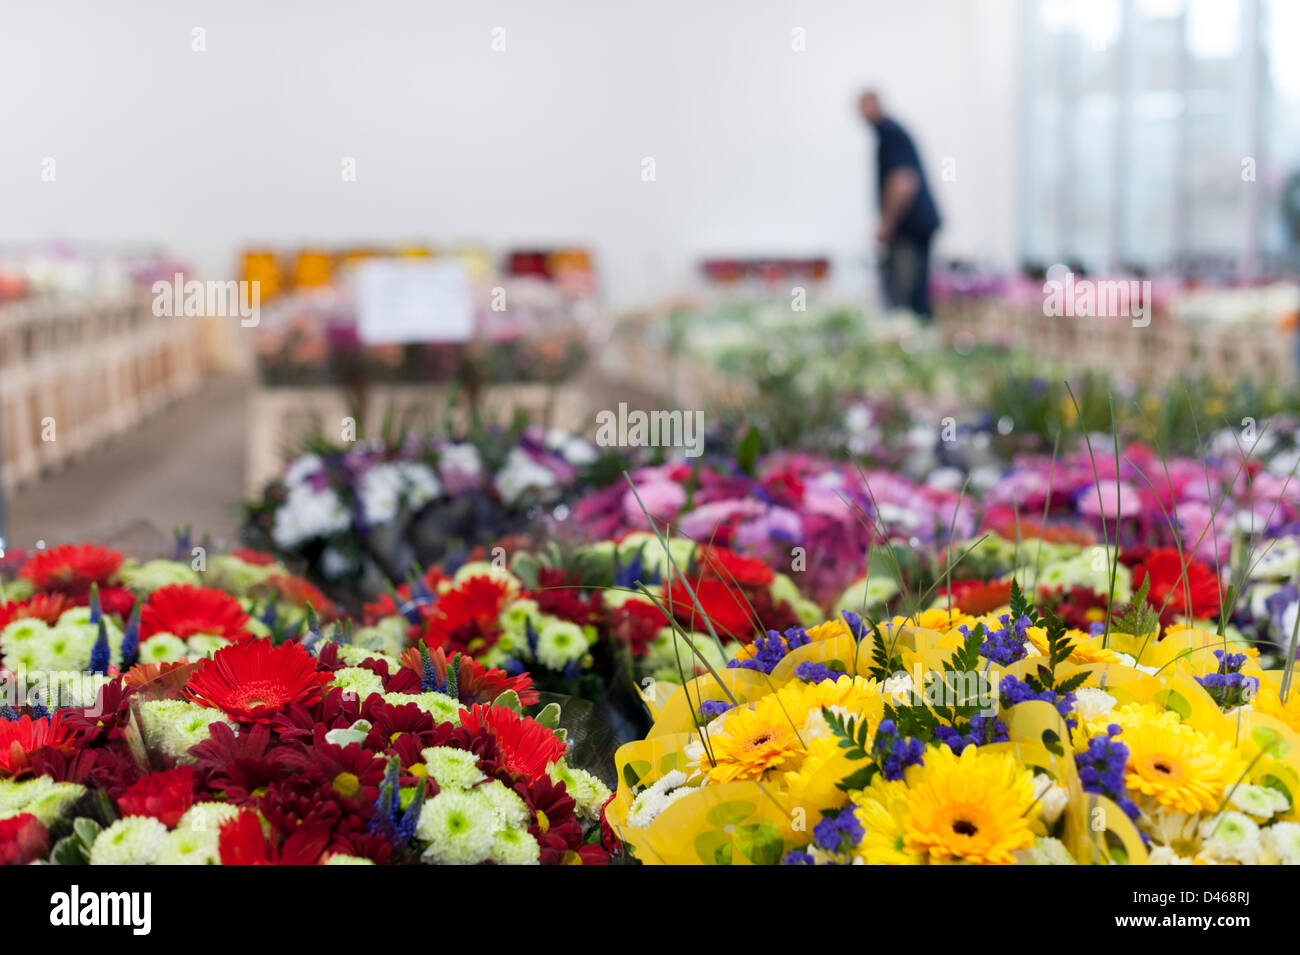 Sandy, Bedfordshire, UK. 6th March 2013. A beautiful array of flowers are stacked in rows at Flower wholesaler Savins, - Stock Image